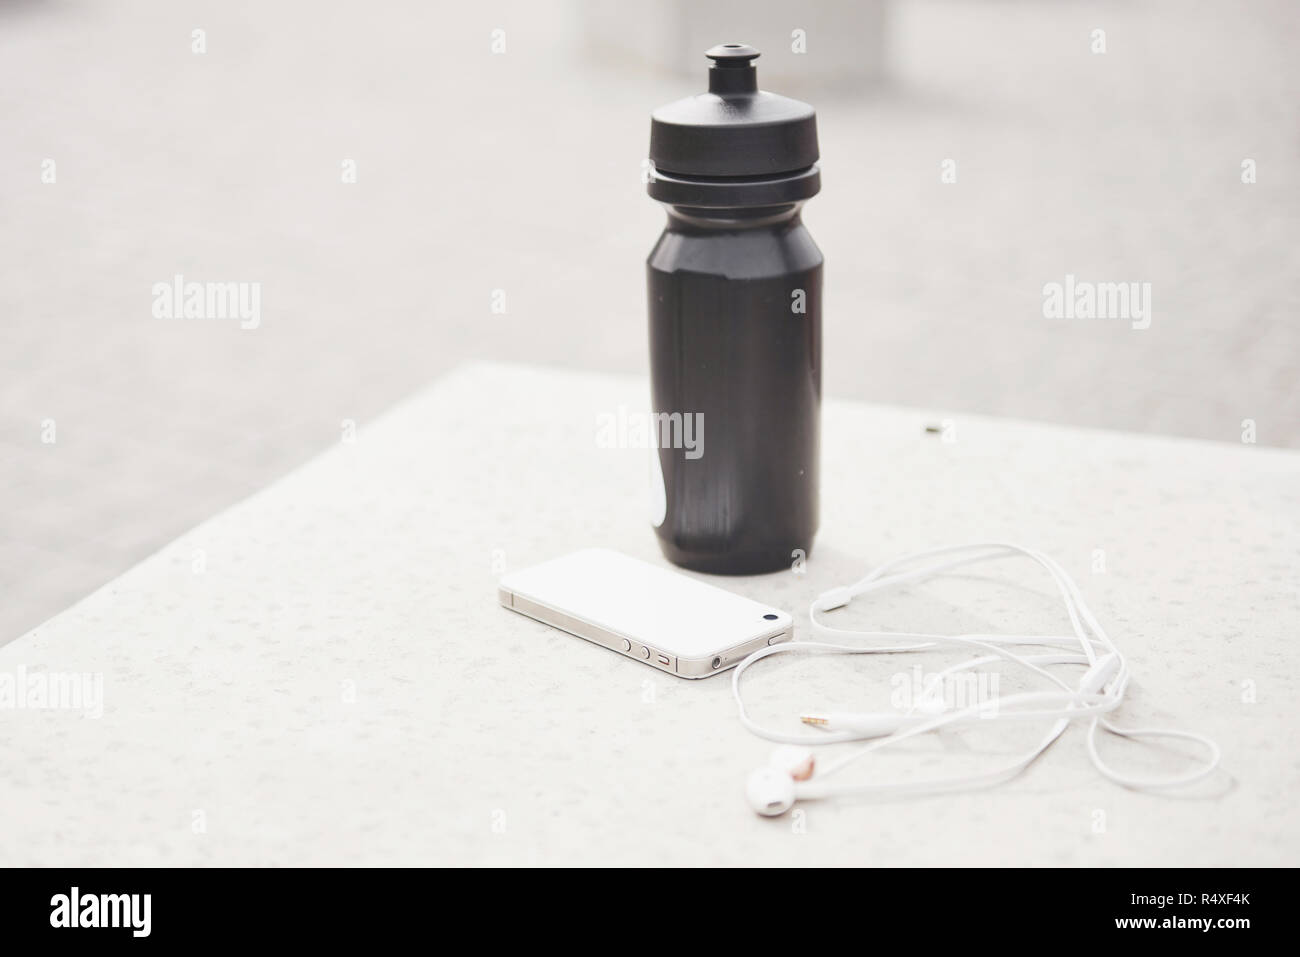 Phone headphones and a bottle of water in the open air. Accessories for running sports Stock Photo